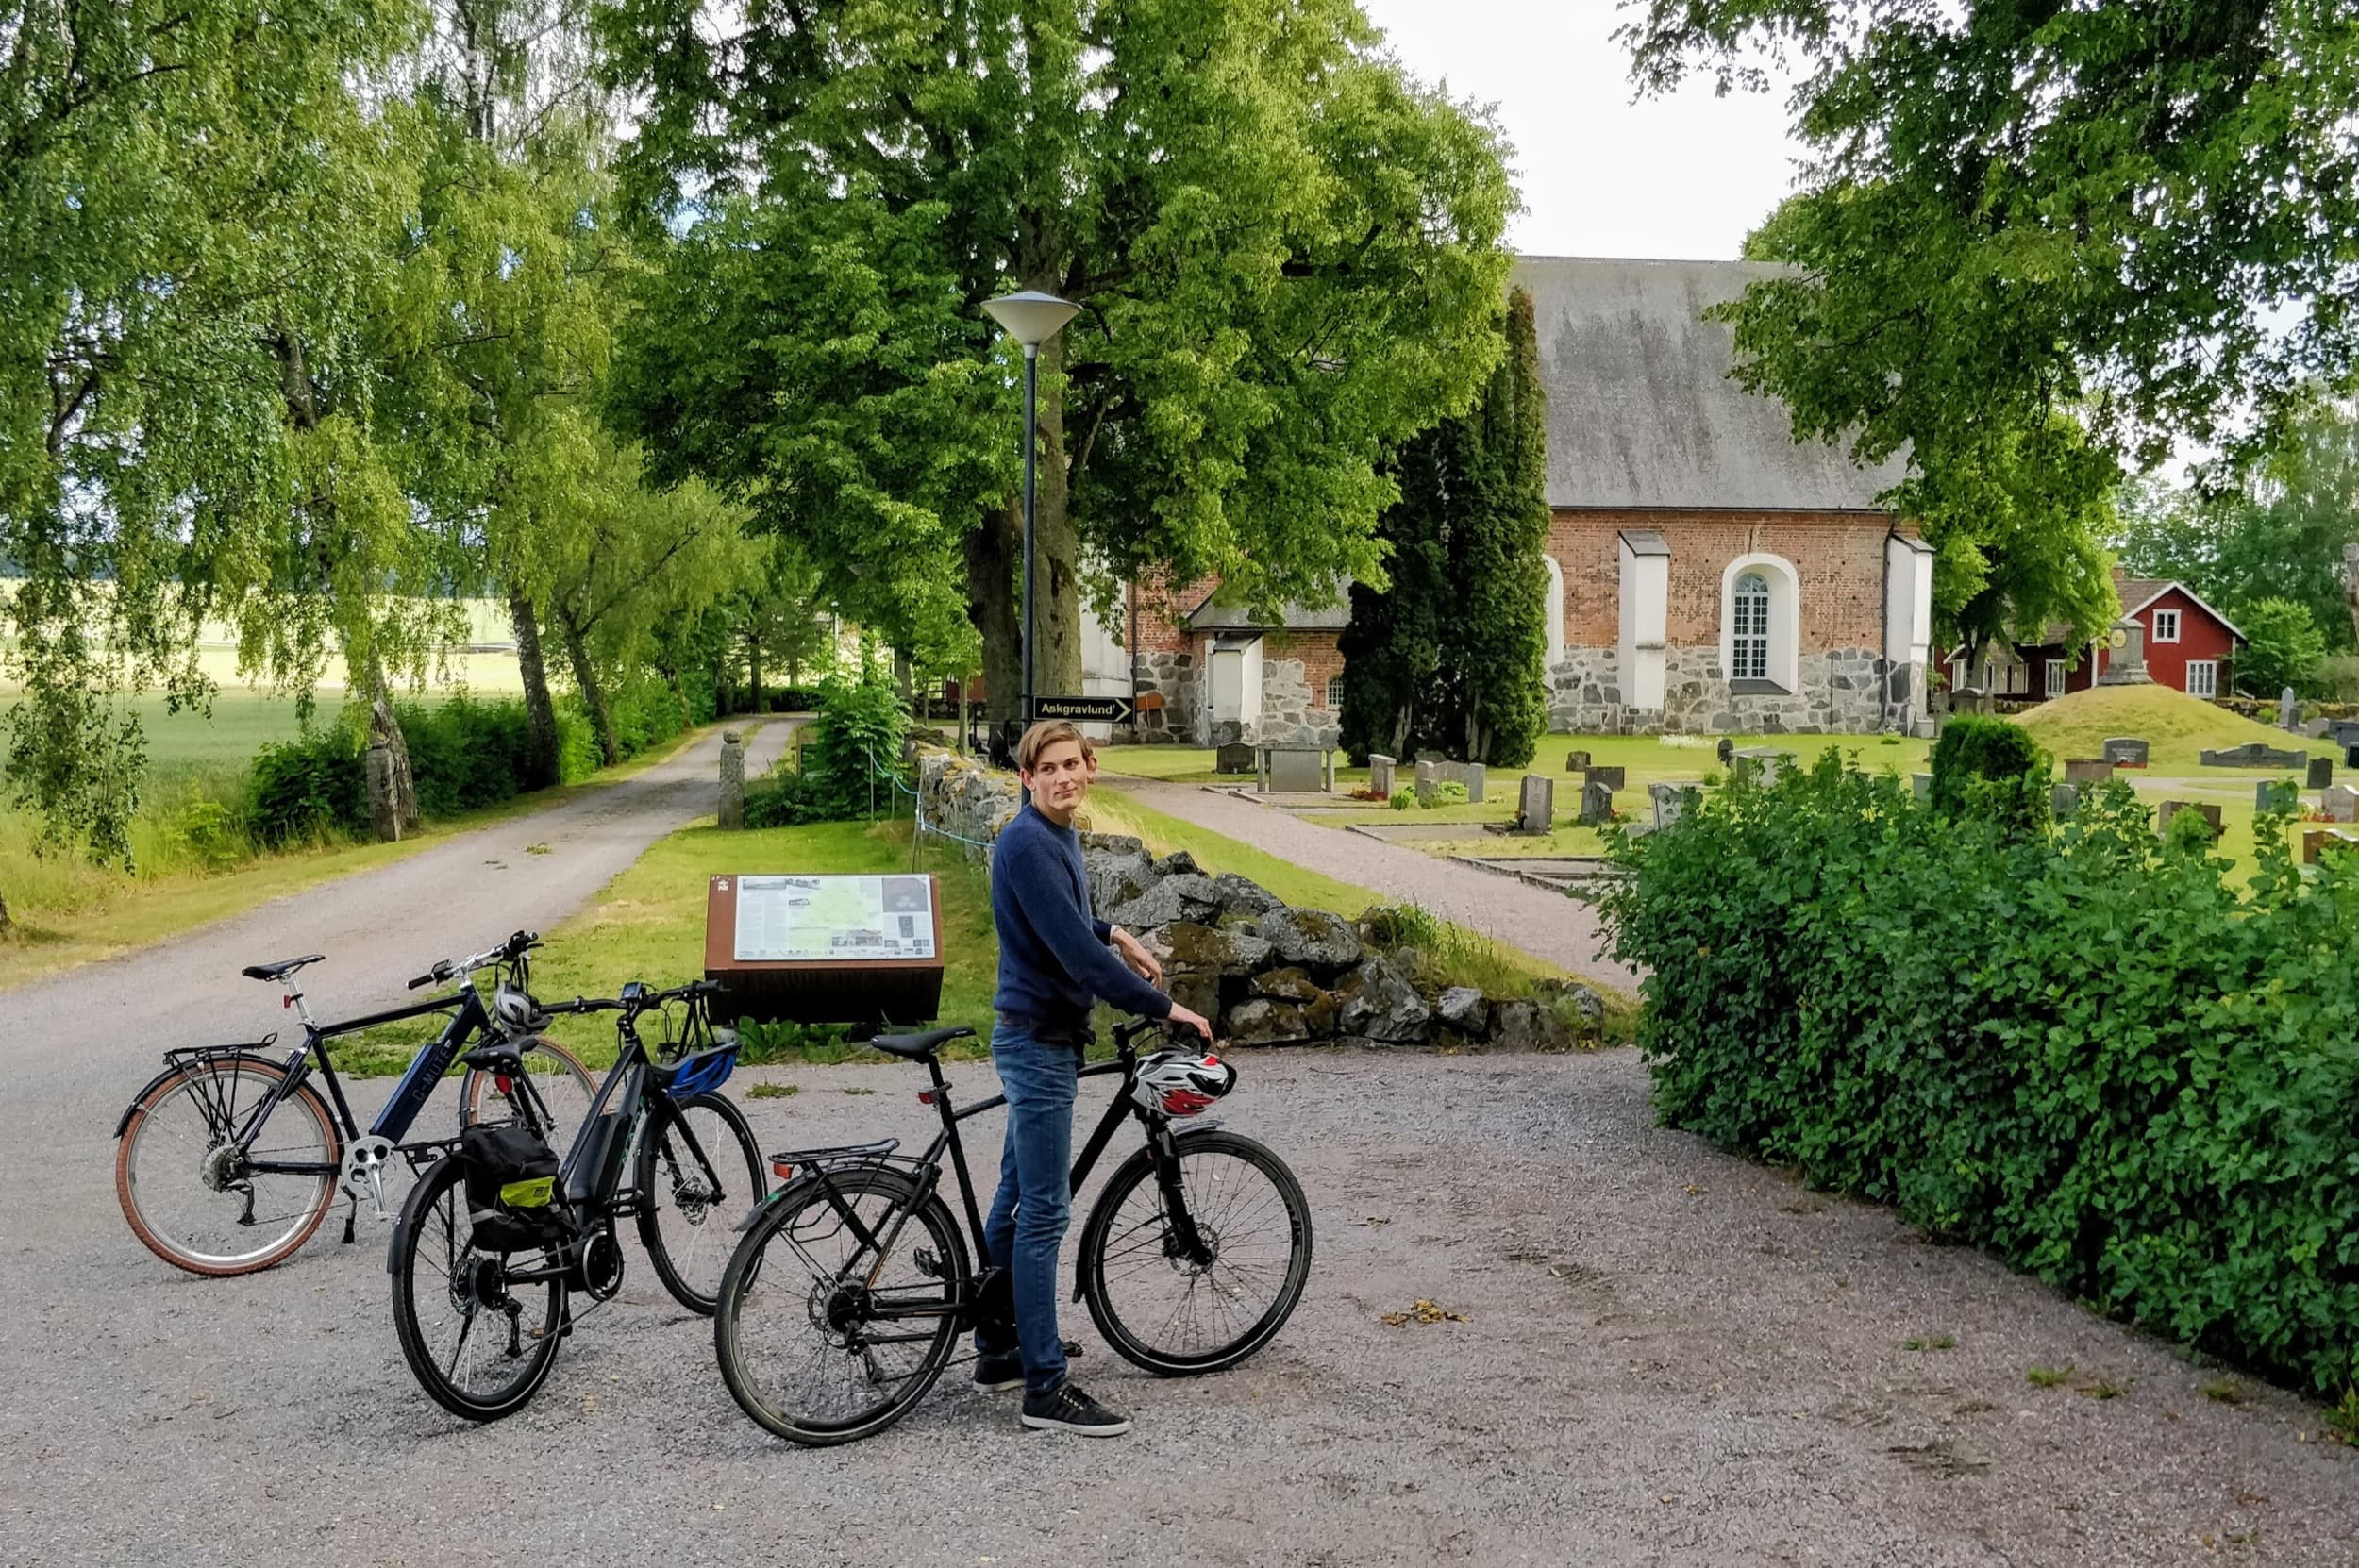 Cyclist at Nysätra church Fjärdhundraland